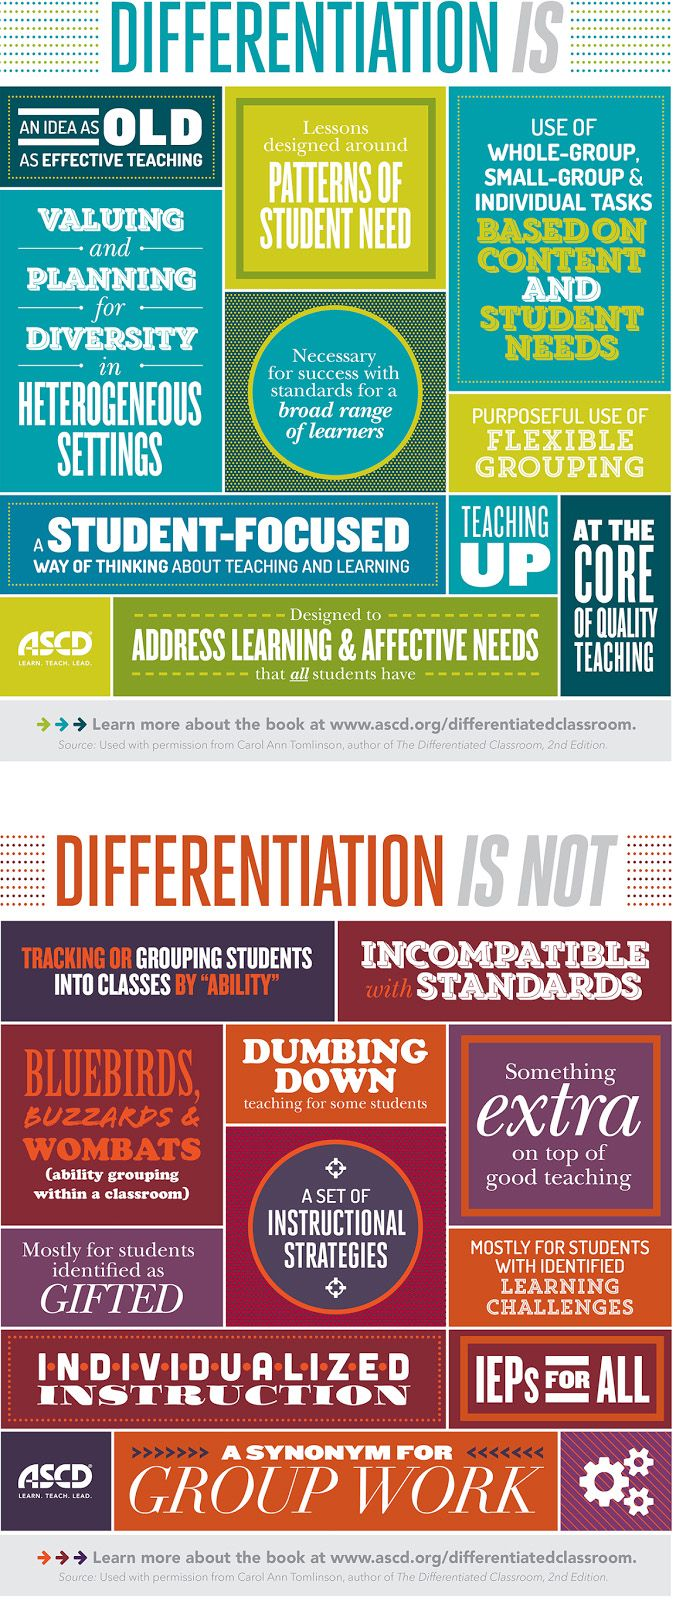 What exactly is differentiated instruction? A handy infographic from @ASCD helps explain.